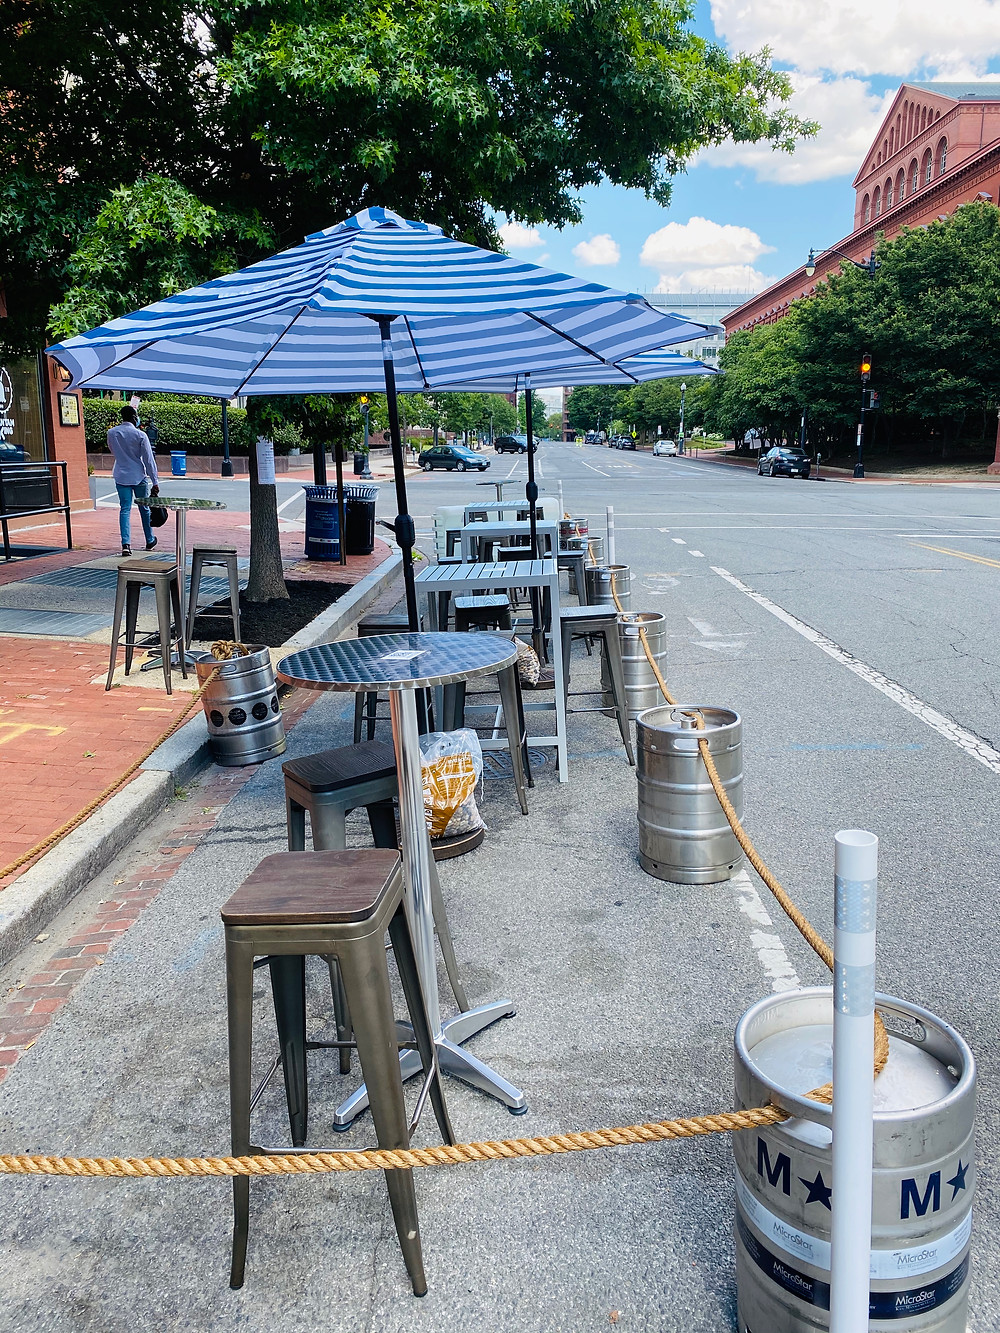 Several silver high-top tables with stools are set up in a roped off area of the street next to a brick sidewalk. There are large blue and white striped umbrellas between each table. A thick brown nautical rope is strung through large silver keg handles to section off the seating area from traffic. There are green trees along the next block in the distance.